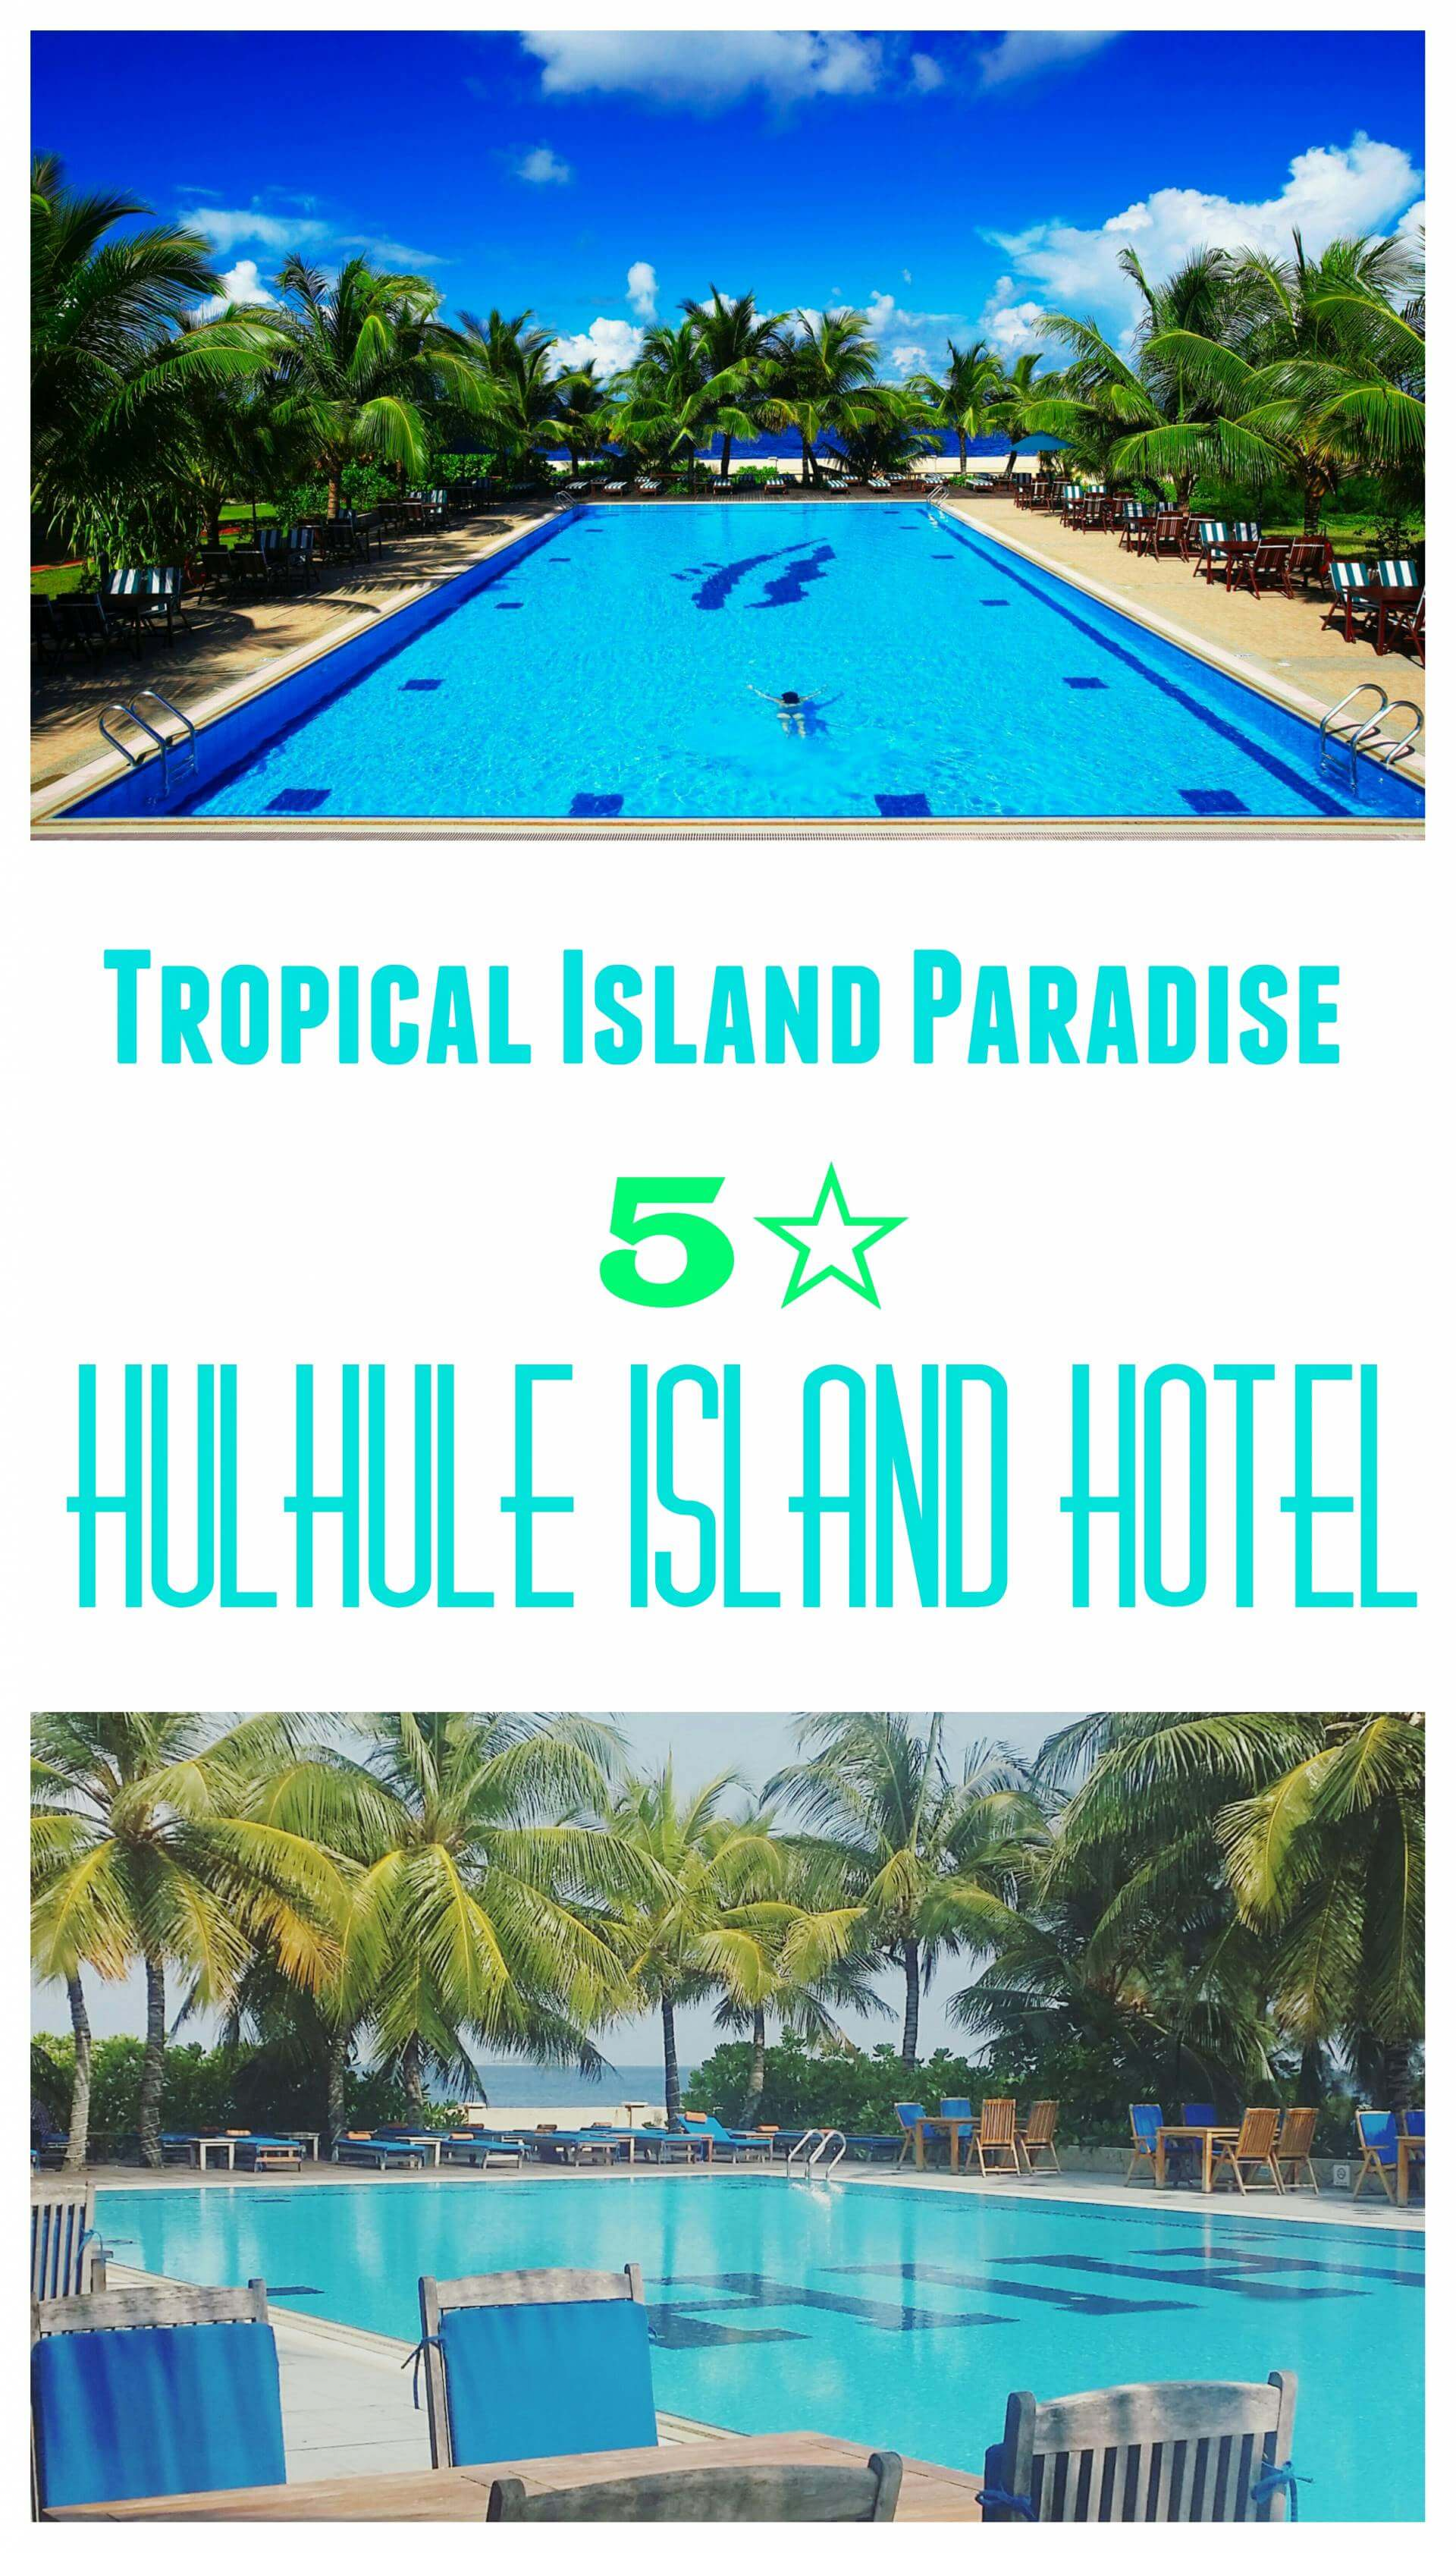 hulhule island hotel maldives where is tara povey irish travel blogger